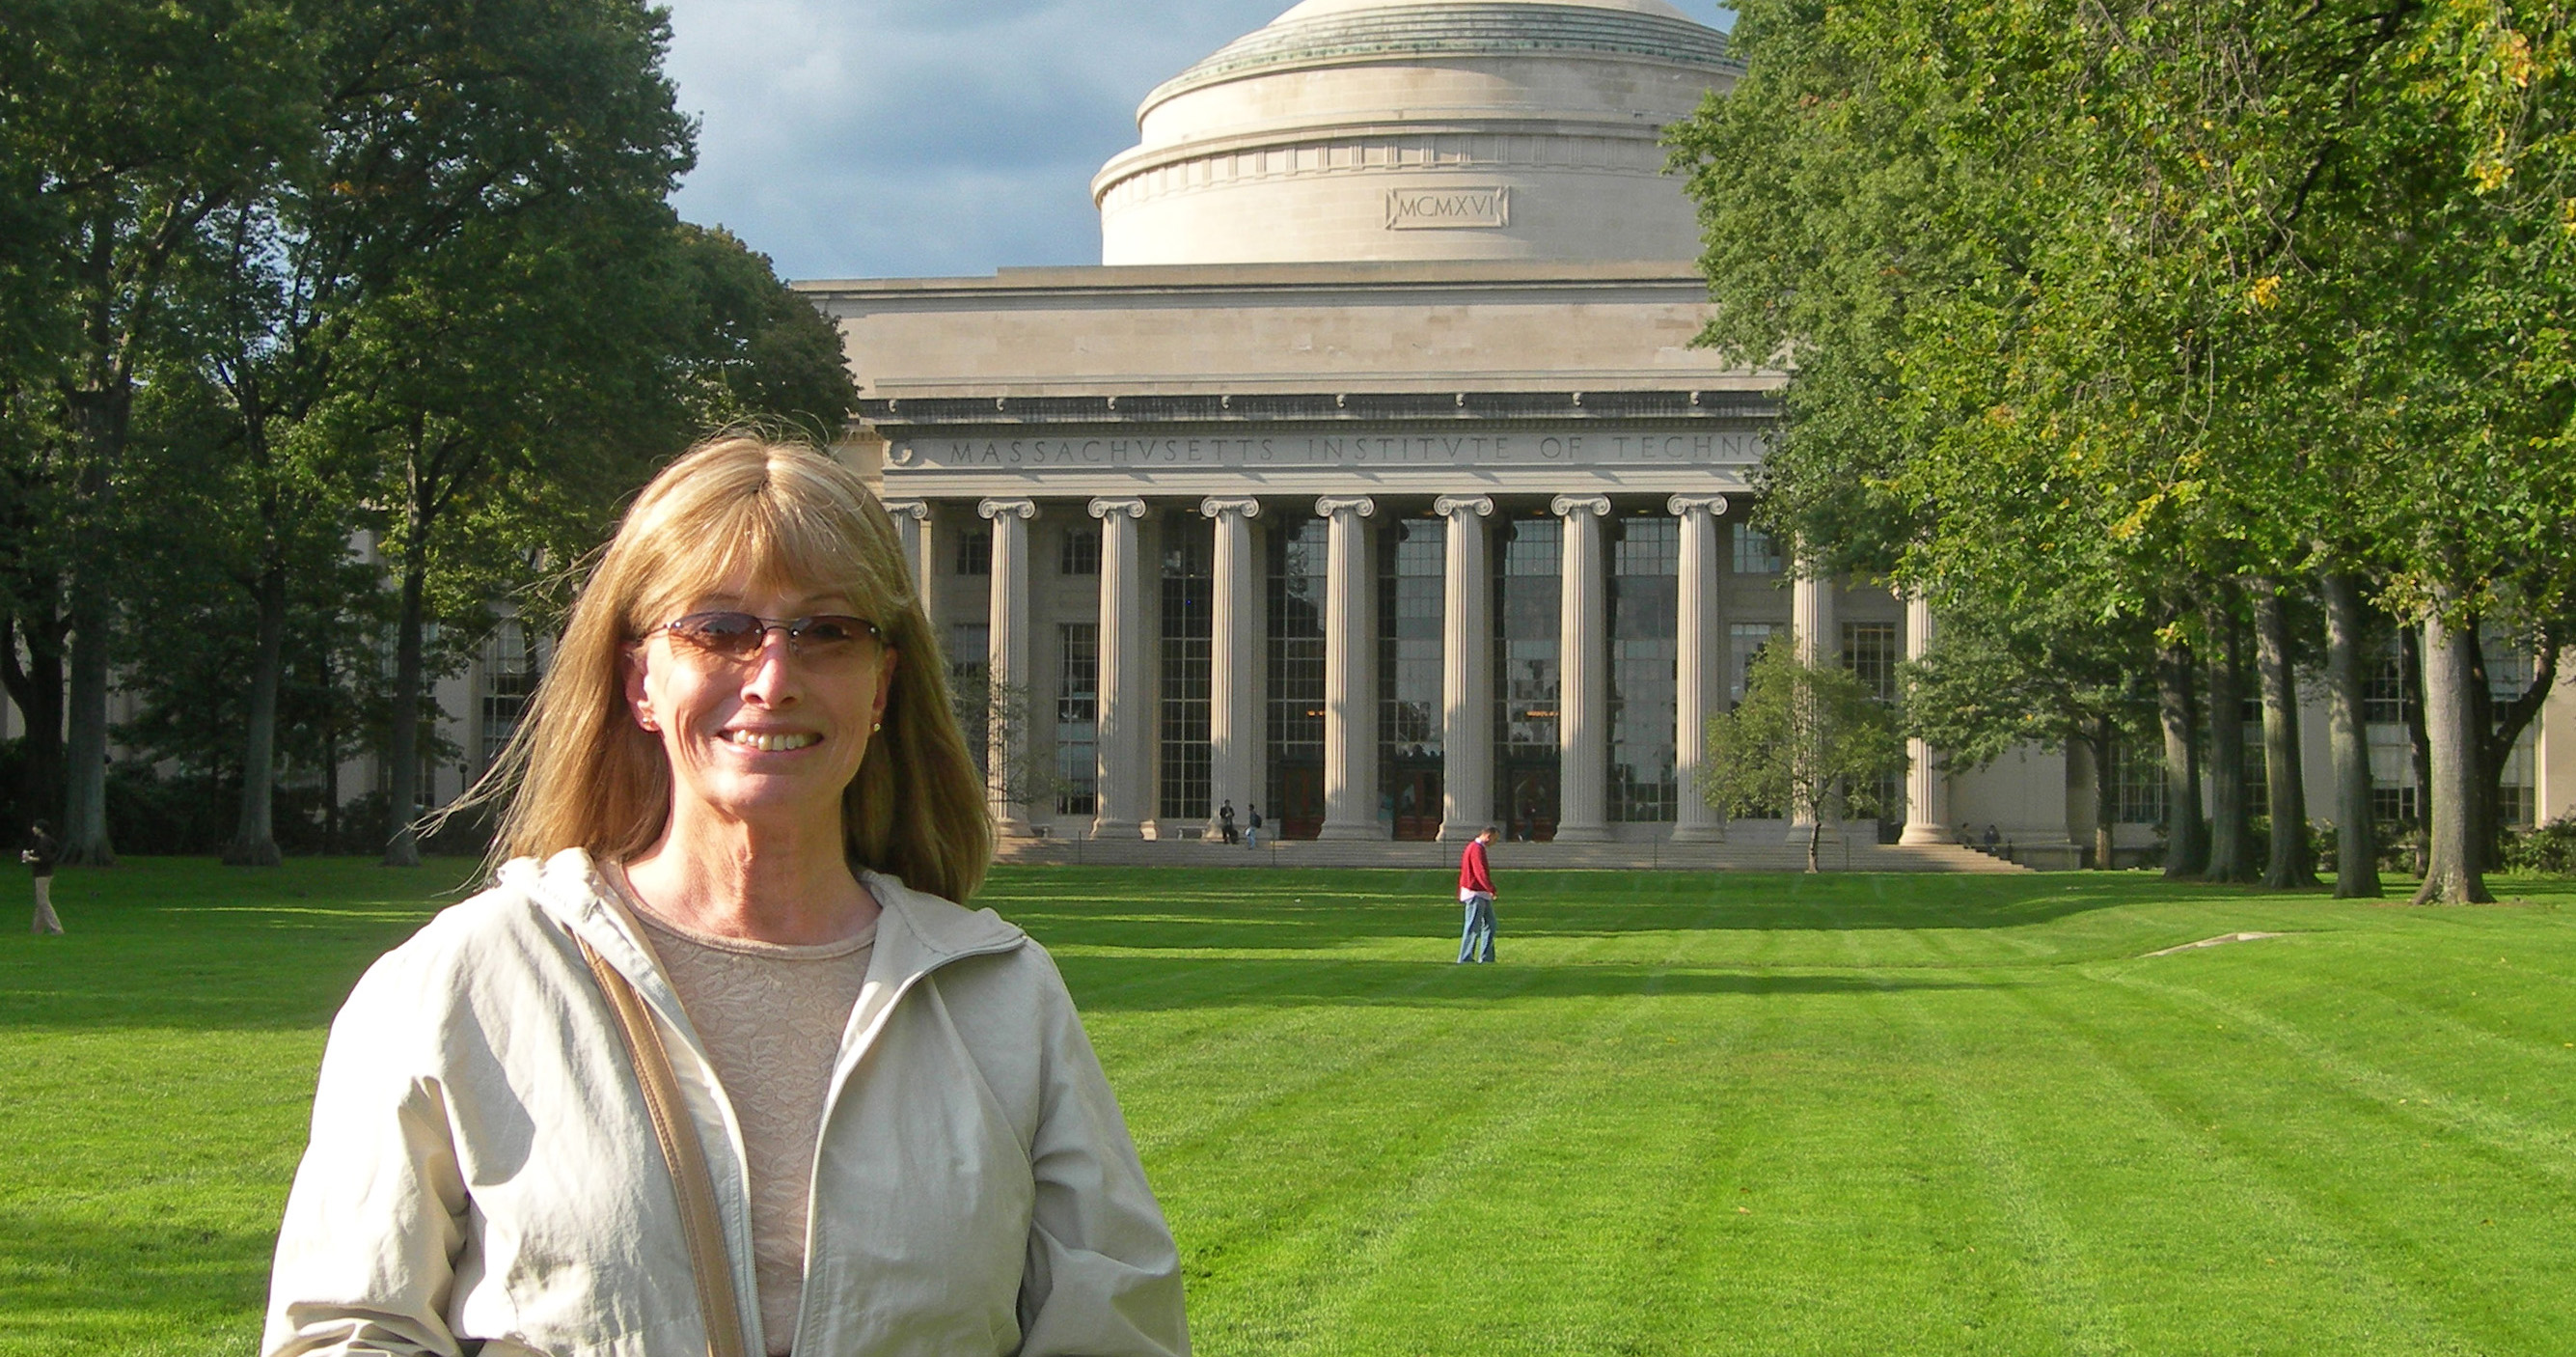 lynn conway is the perfect example of a successful